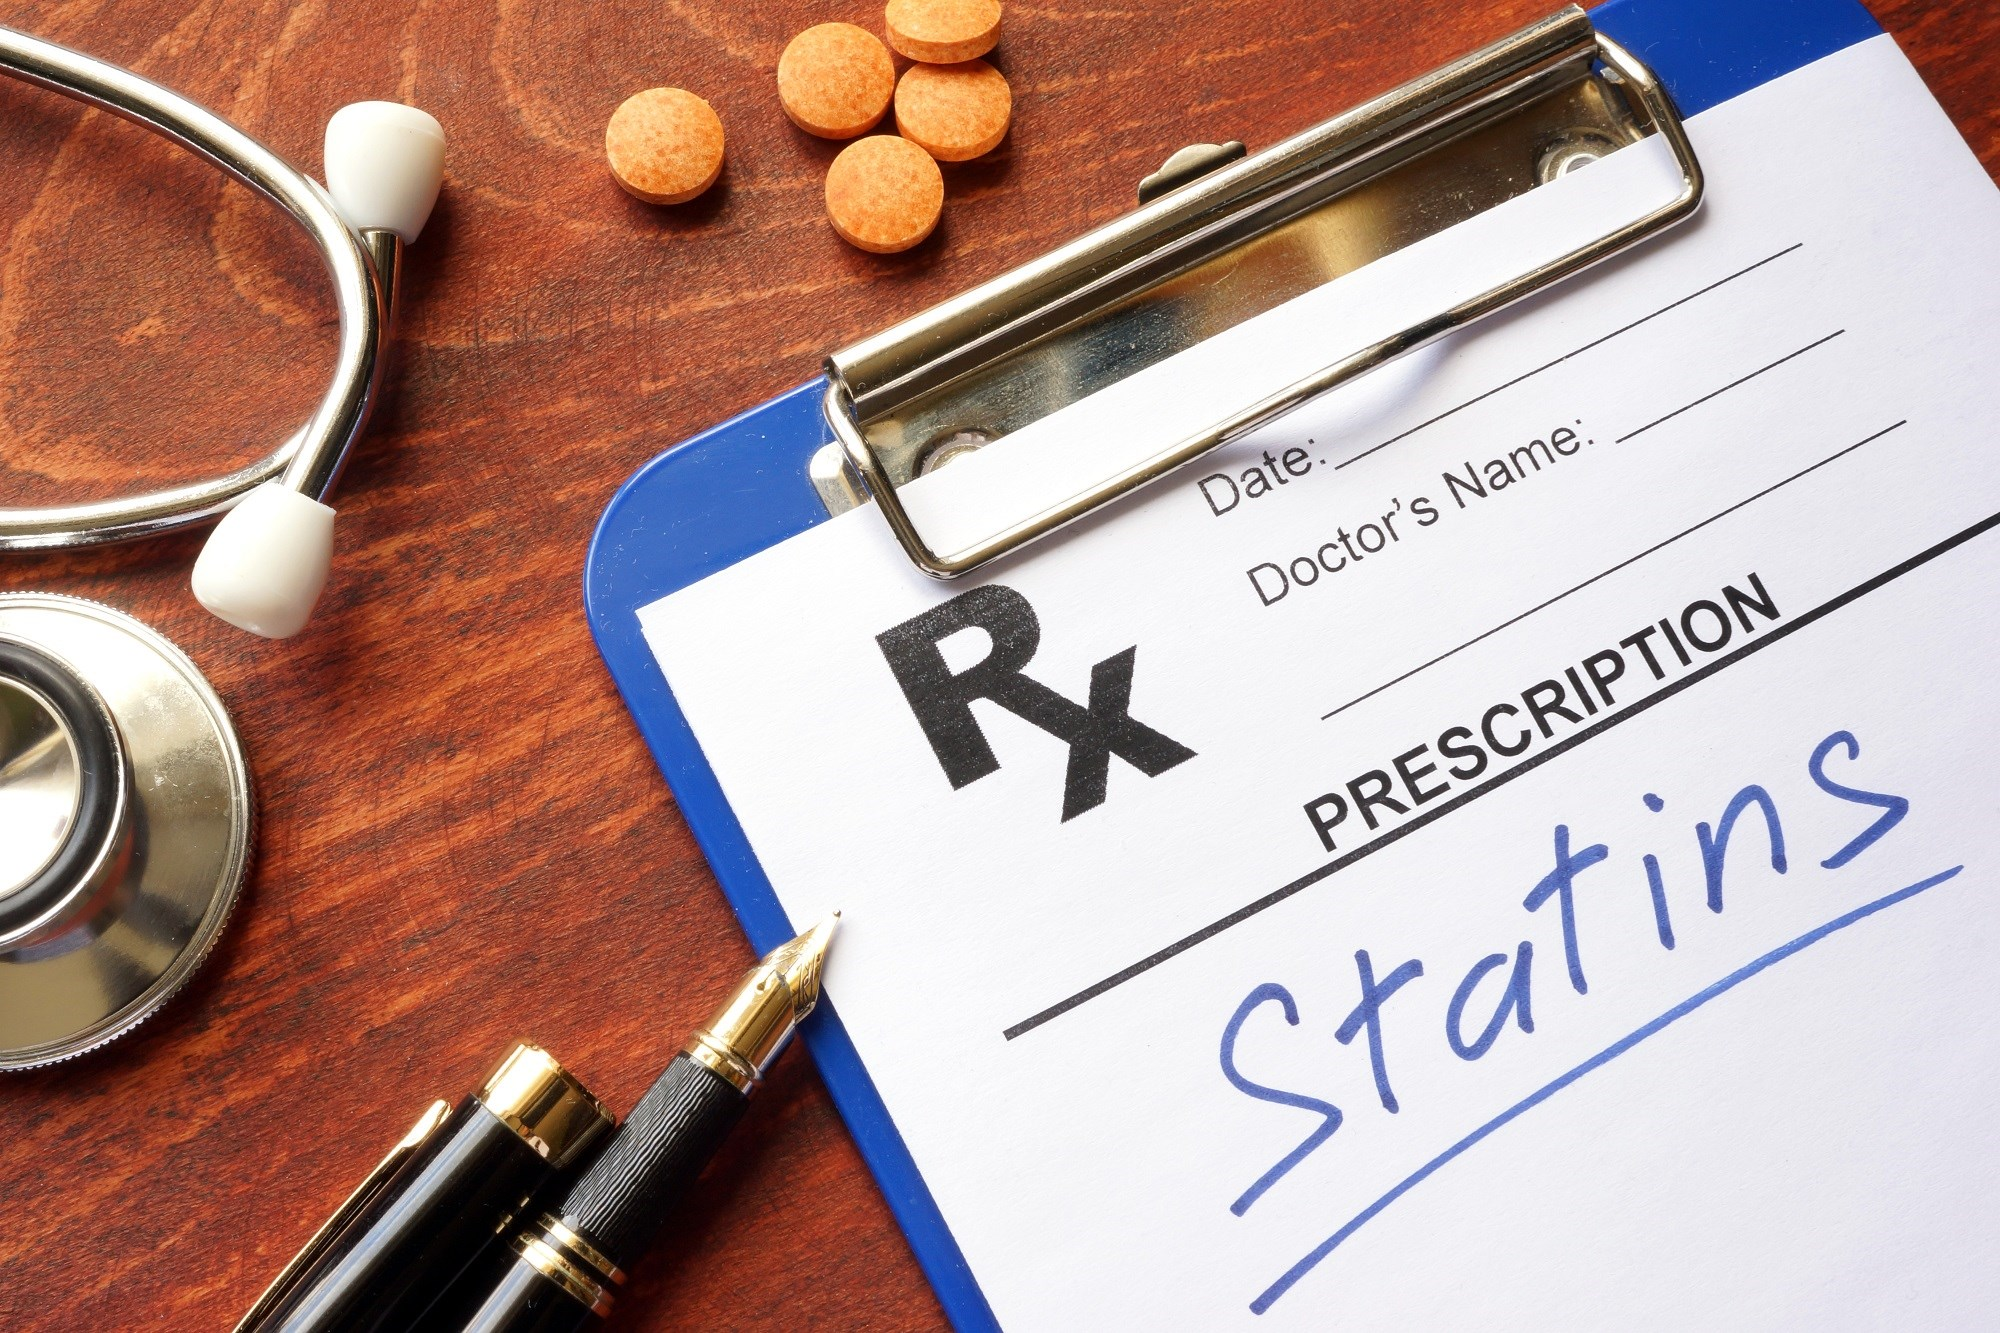 Nonadherence, Discontinuation High in First Year of Statin Therapy